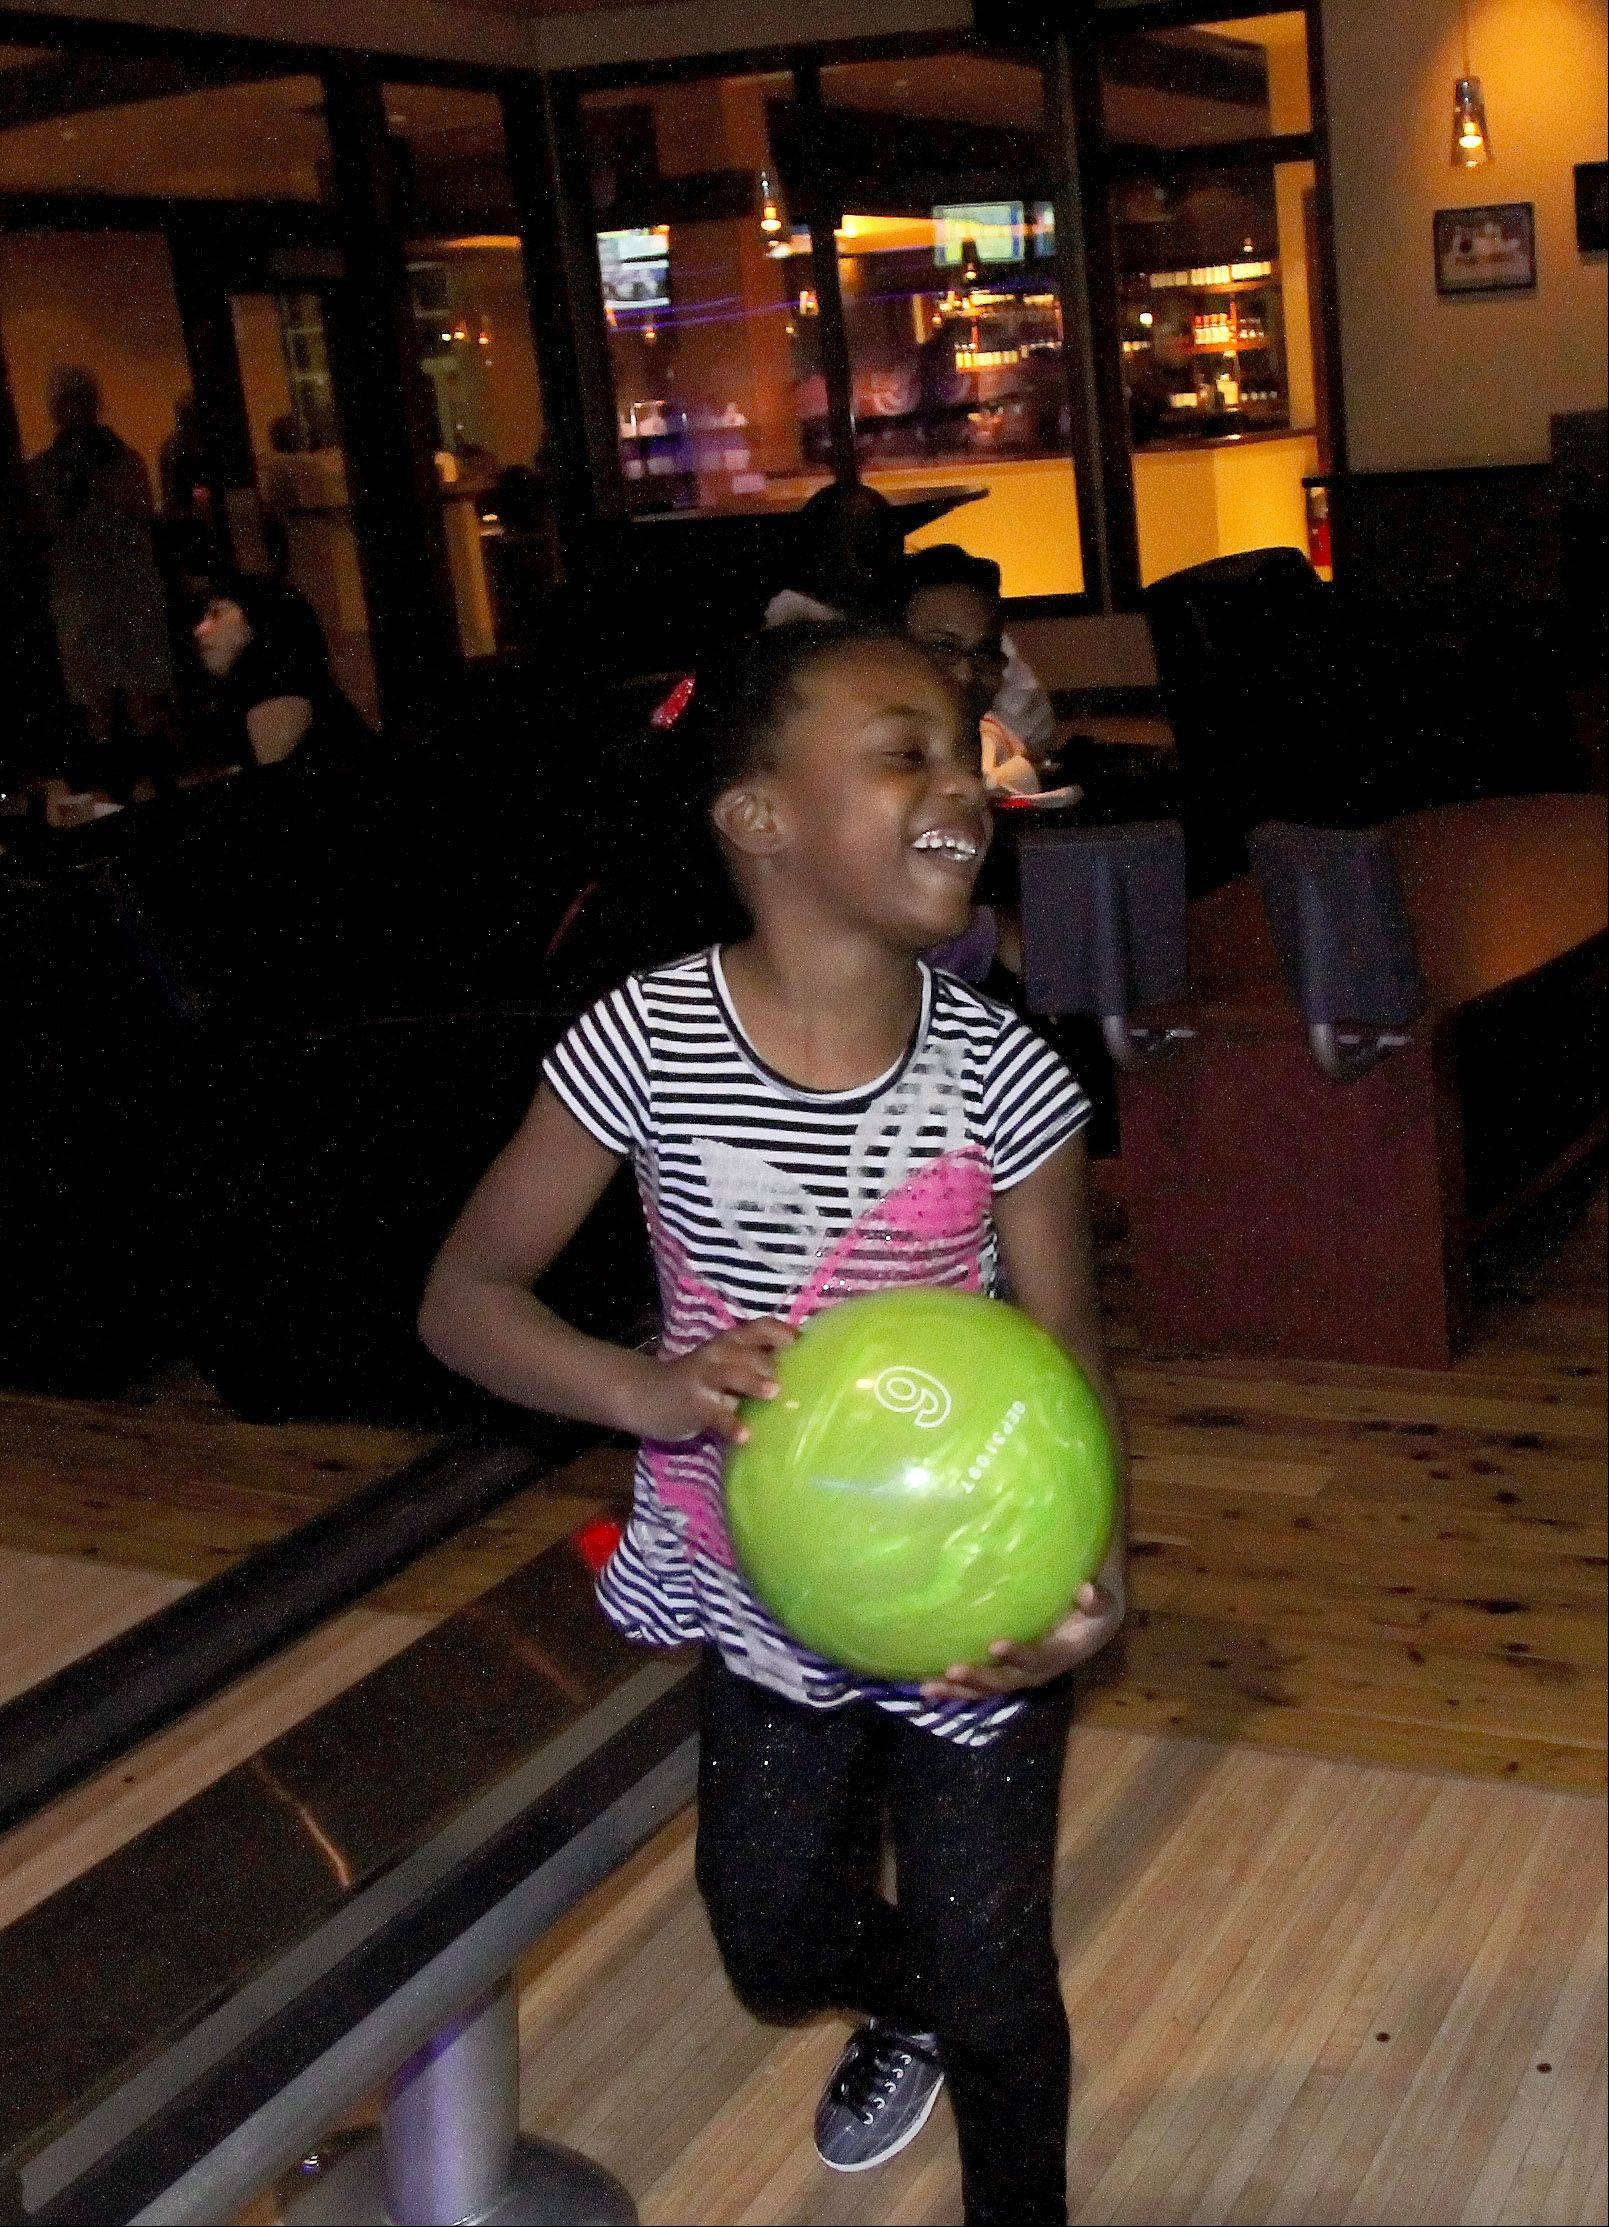 Sanai Helms, 5, of Clarendon Hills, has fun bowling at Pinstripes in Oak Brook.